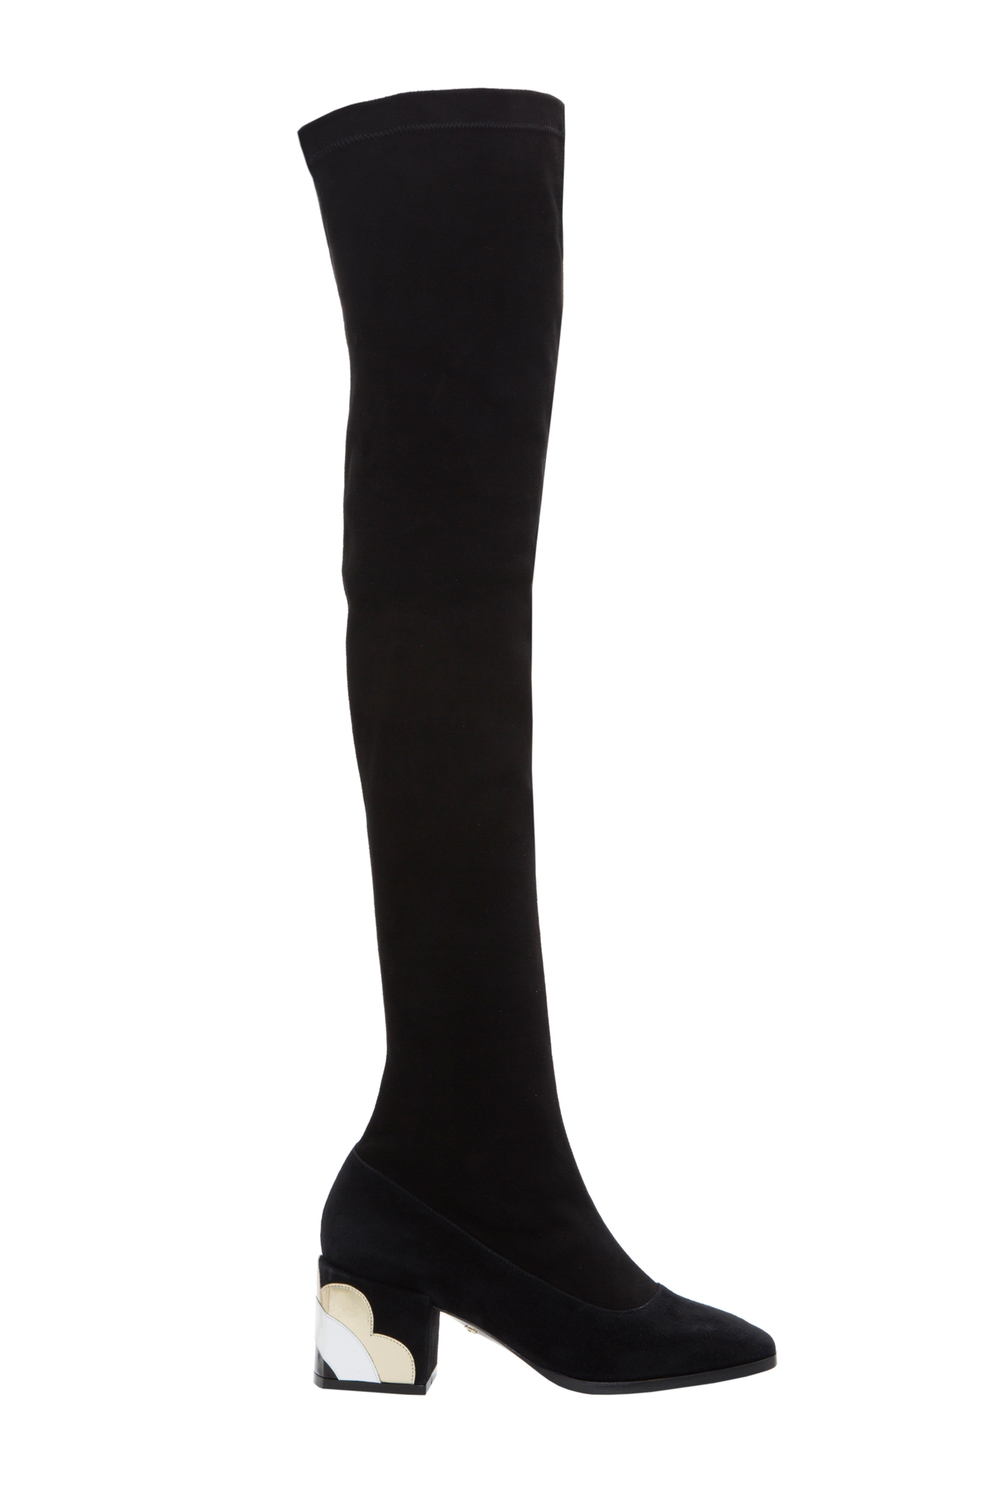 06-07-accessories-trends-fall-2015-thigh-high-boots.jpg